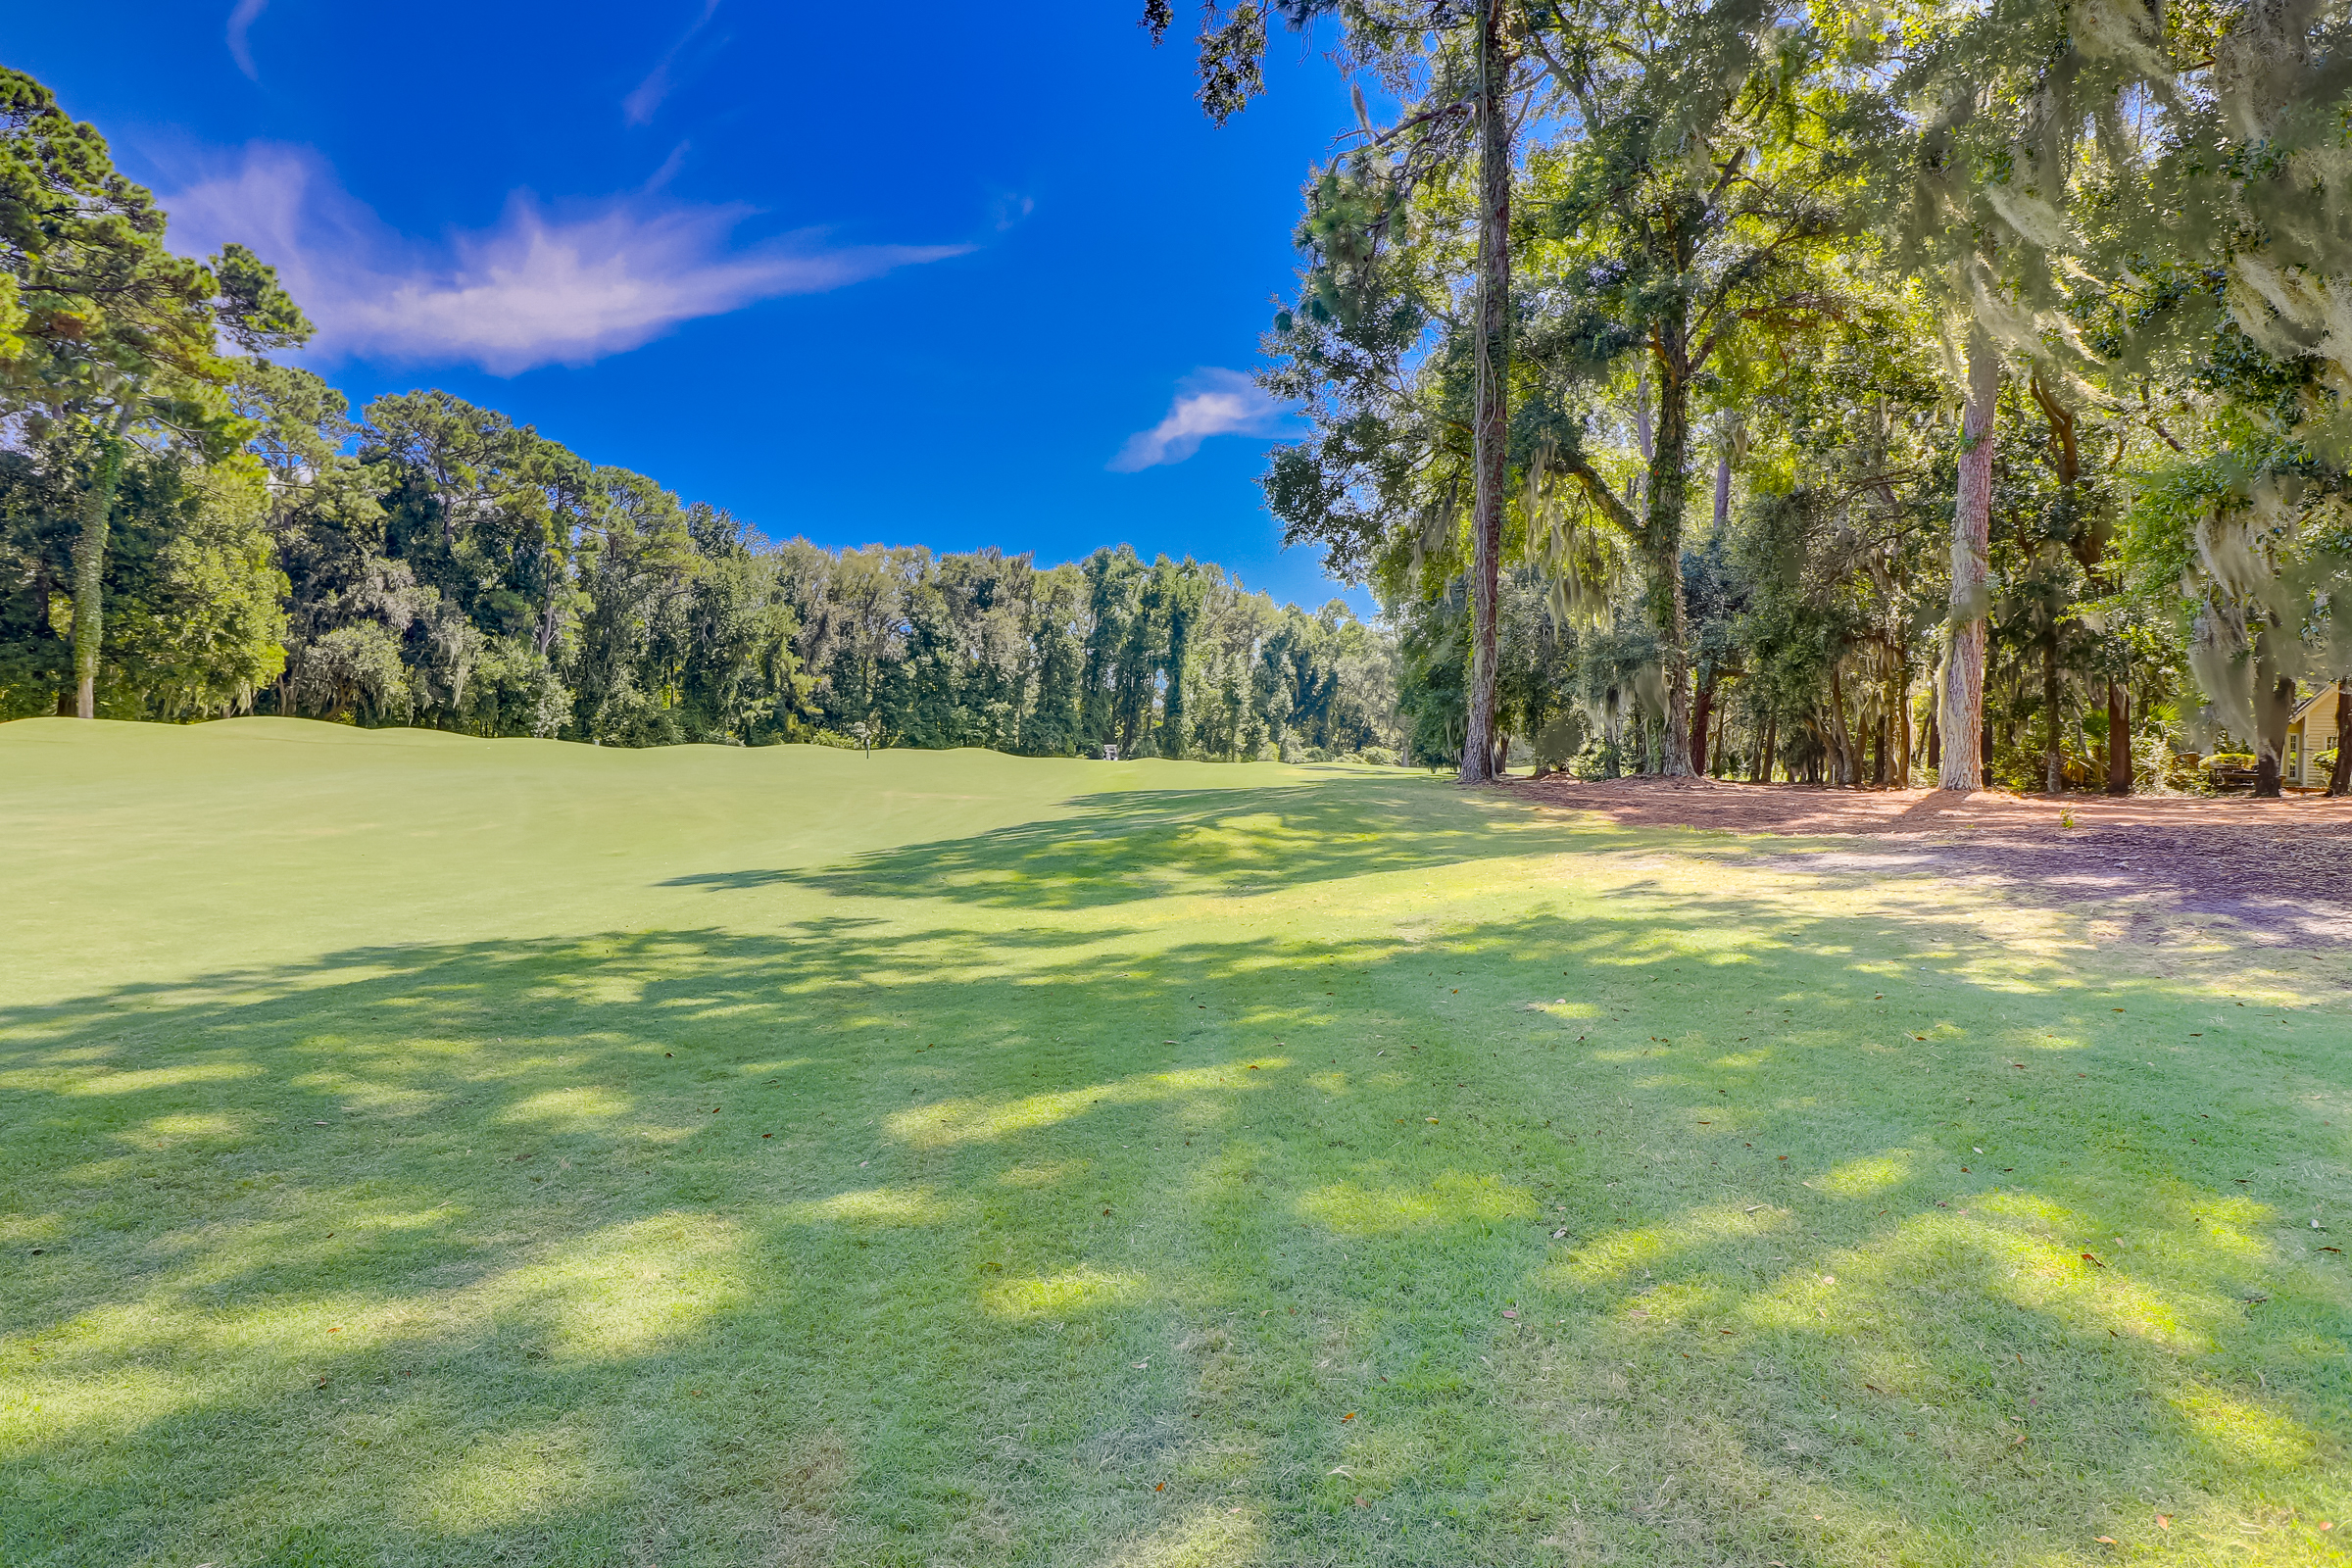 The 7th fairway on the Arthur Hills golf course and not a cart path in site makes this a very private setting.  You can capture these stunning fairway views even more if you want to clear the view corridors from this beautiful home on 314 Fort Howell Dr.